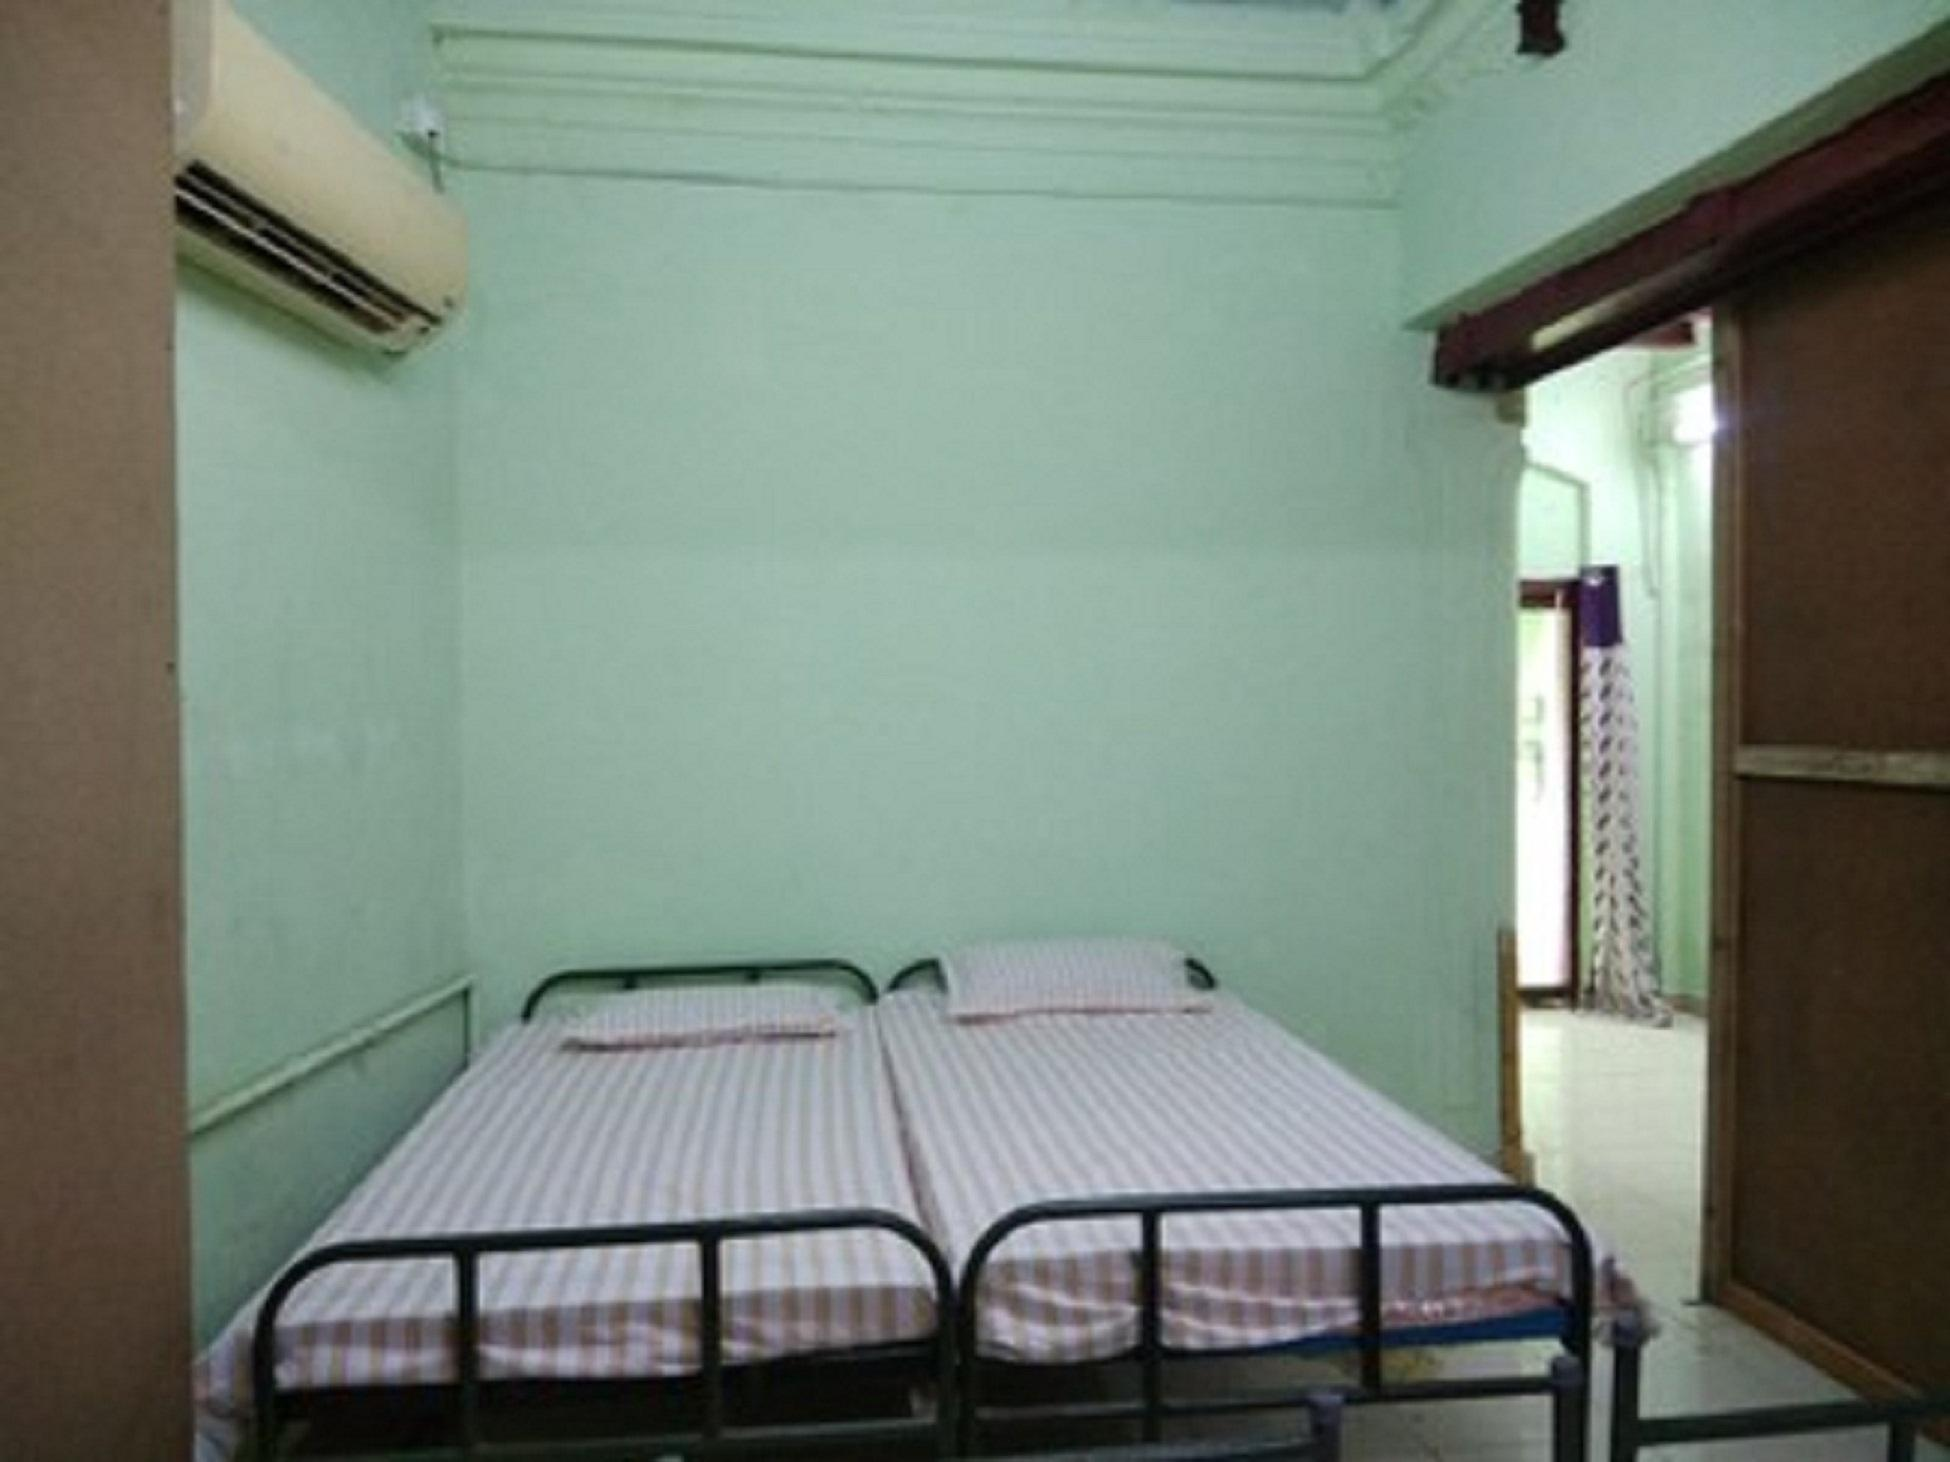 Bachelor Party Home Stay Like Dormitory